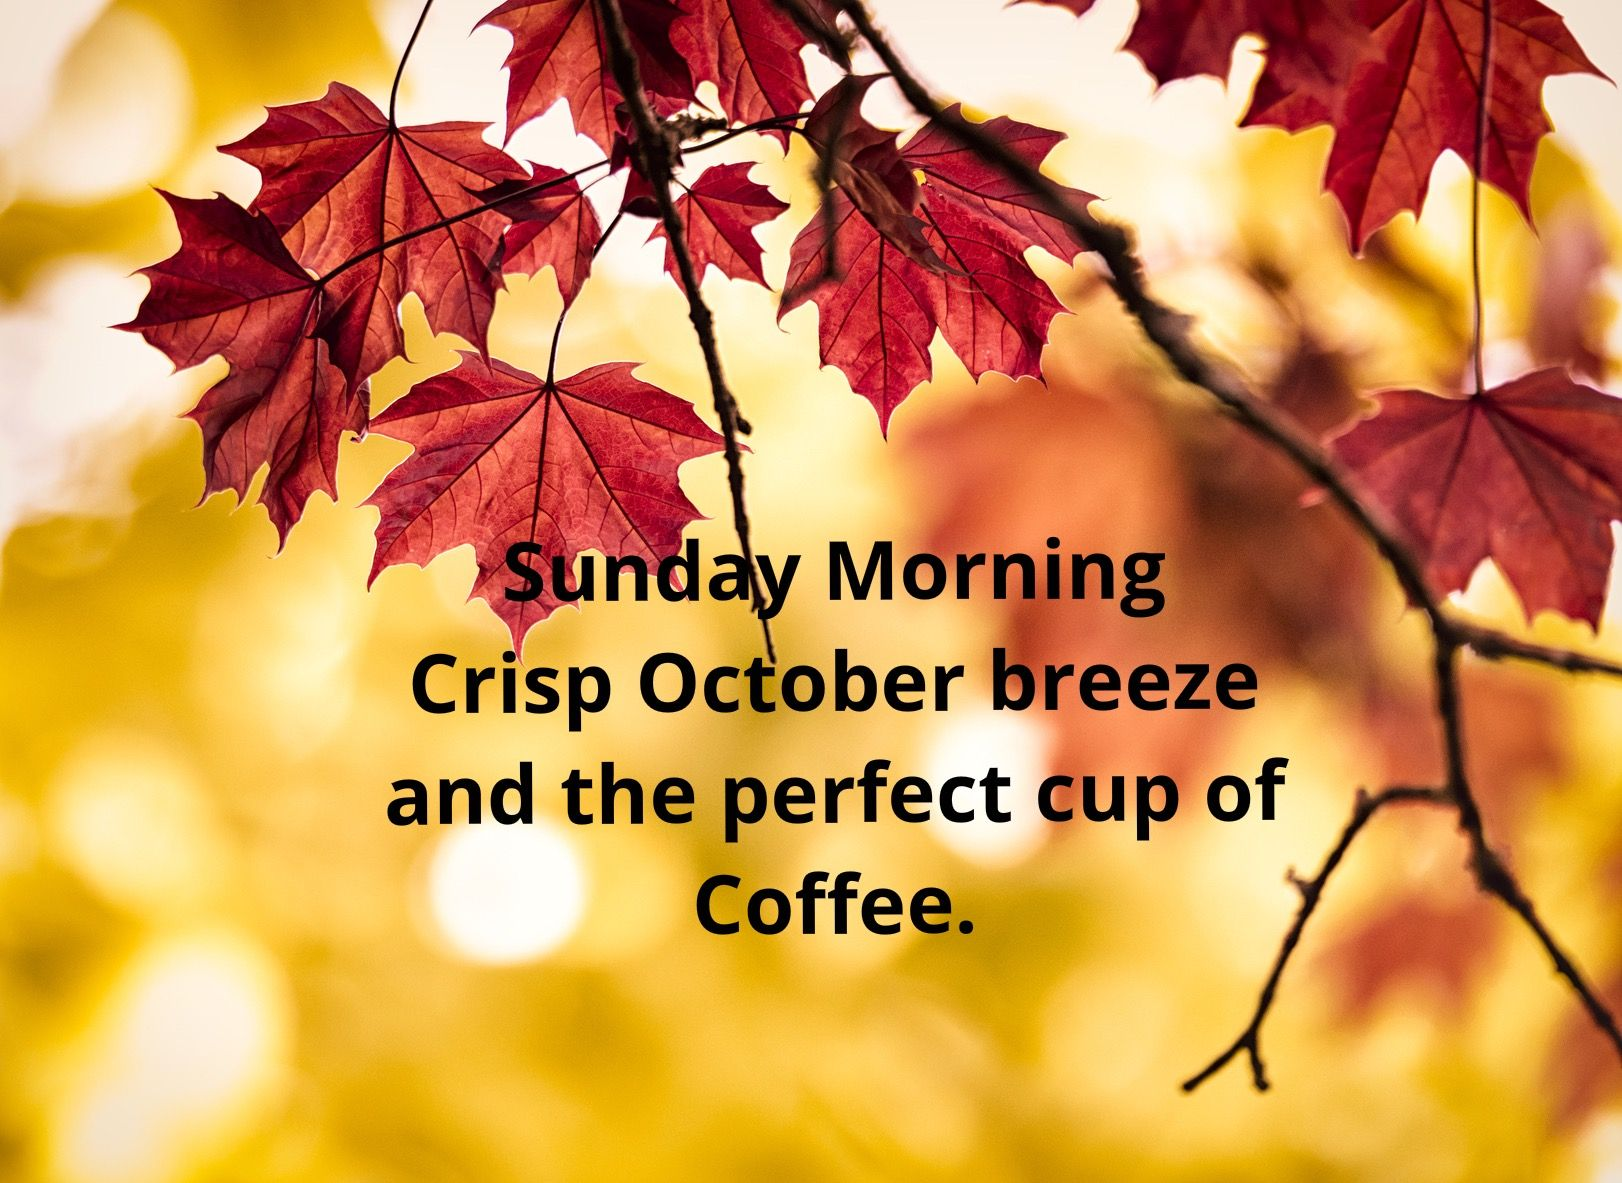 Happy Sunday Morning Misc Quotes Pinterest Quotes Lds Quotes